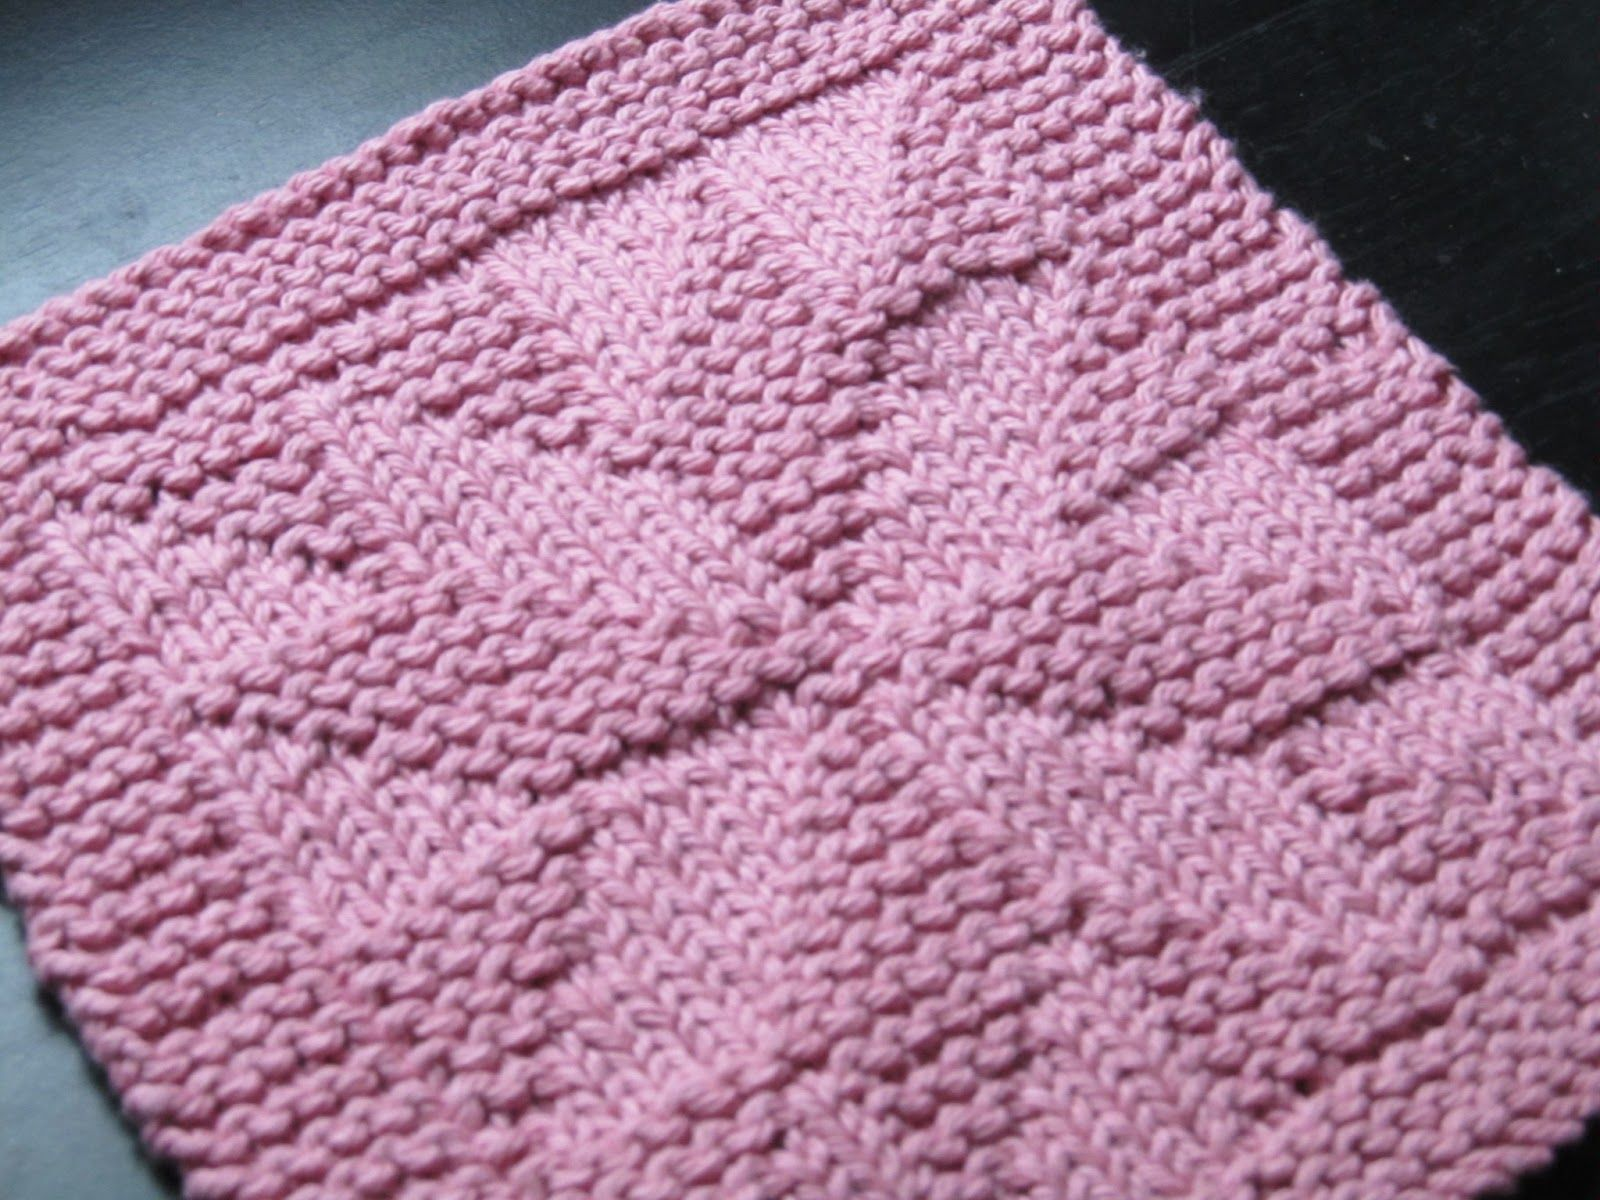 Dishcloth Knitting Patterns Unique Design Inspiration